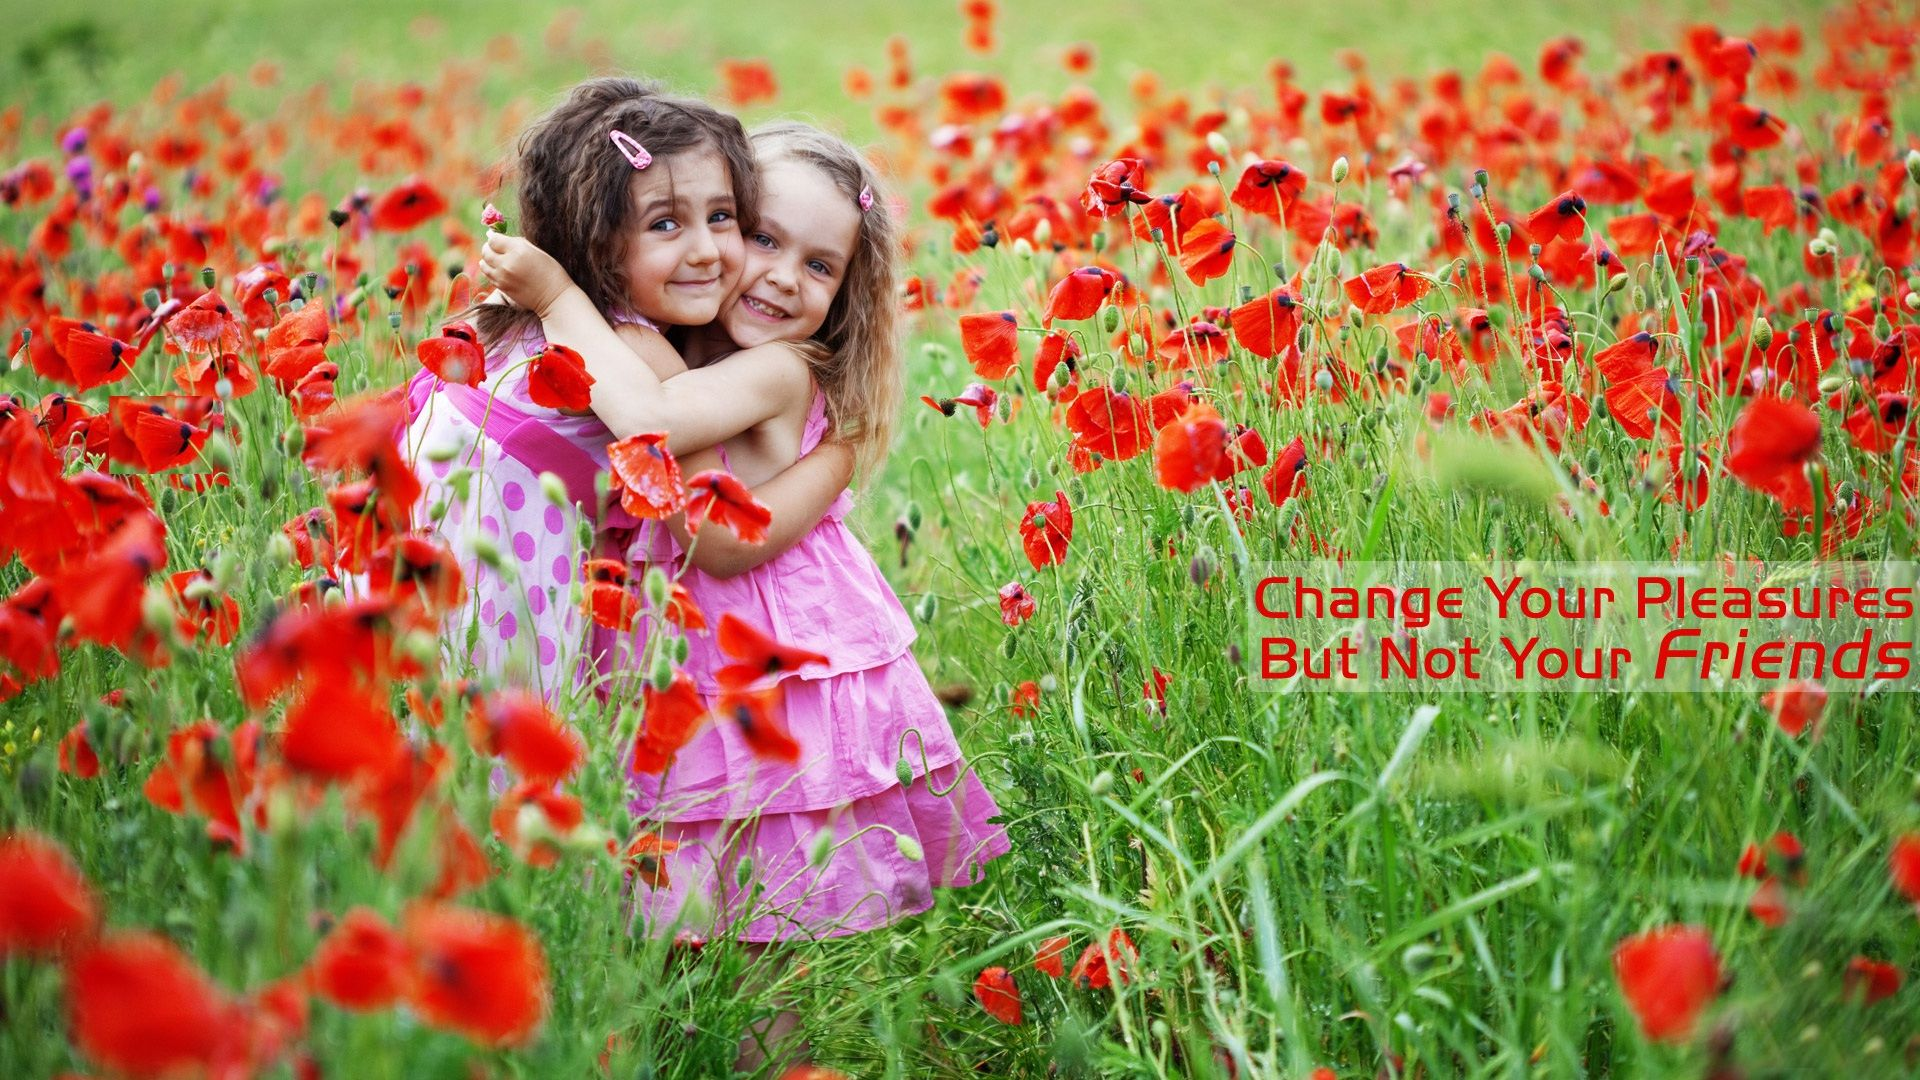 Download this cute beautiful friends HD wallpaper for free in all